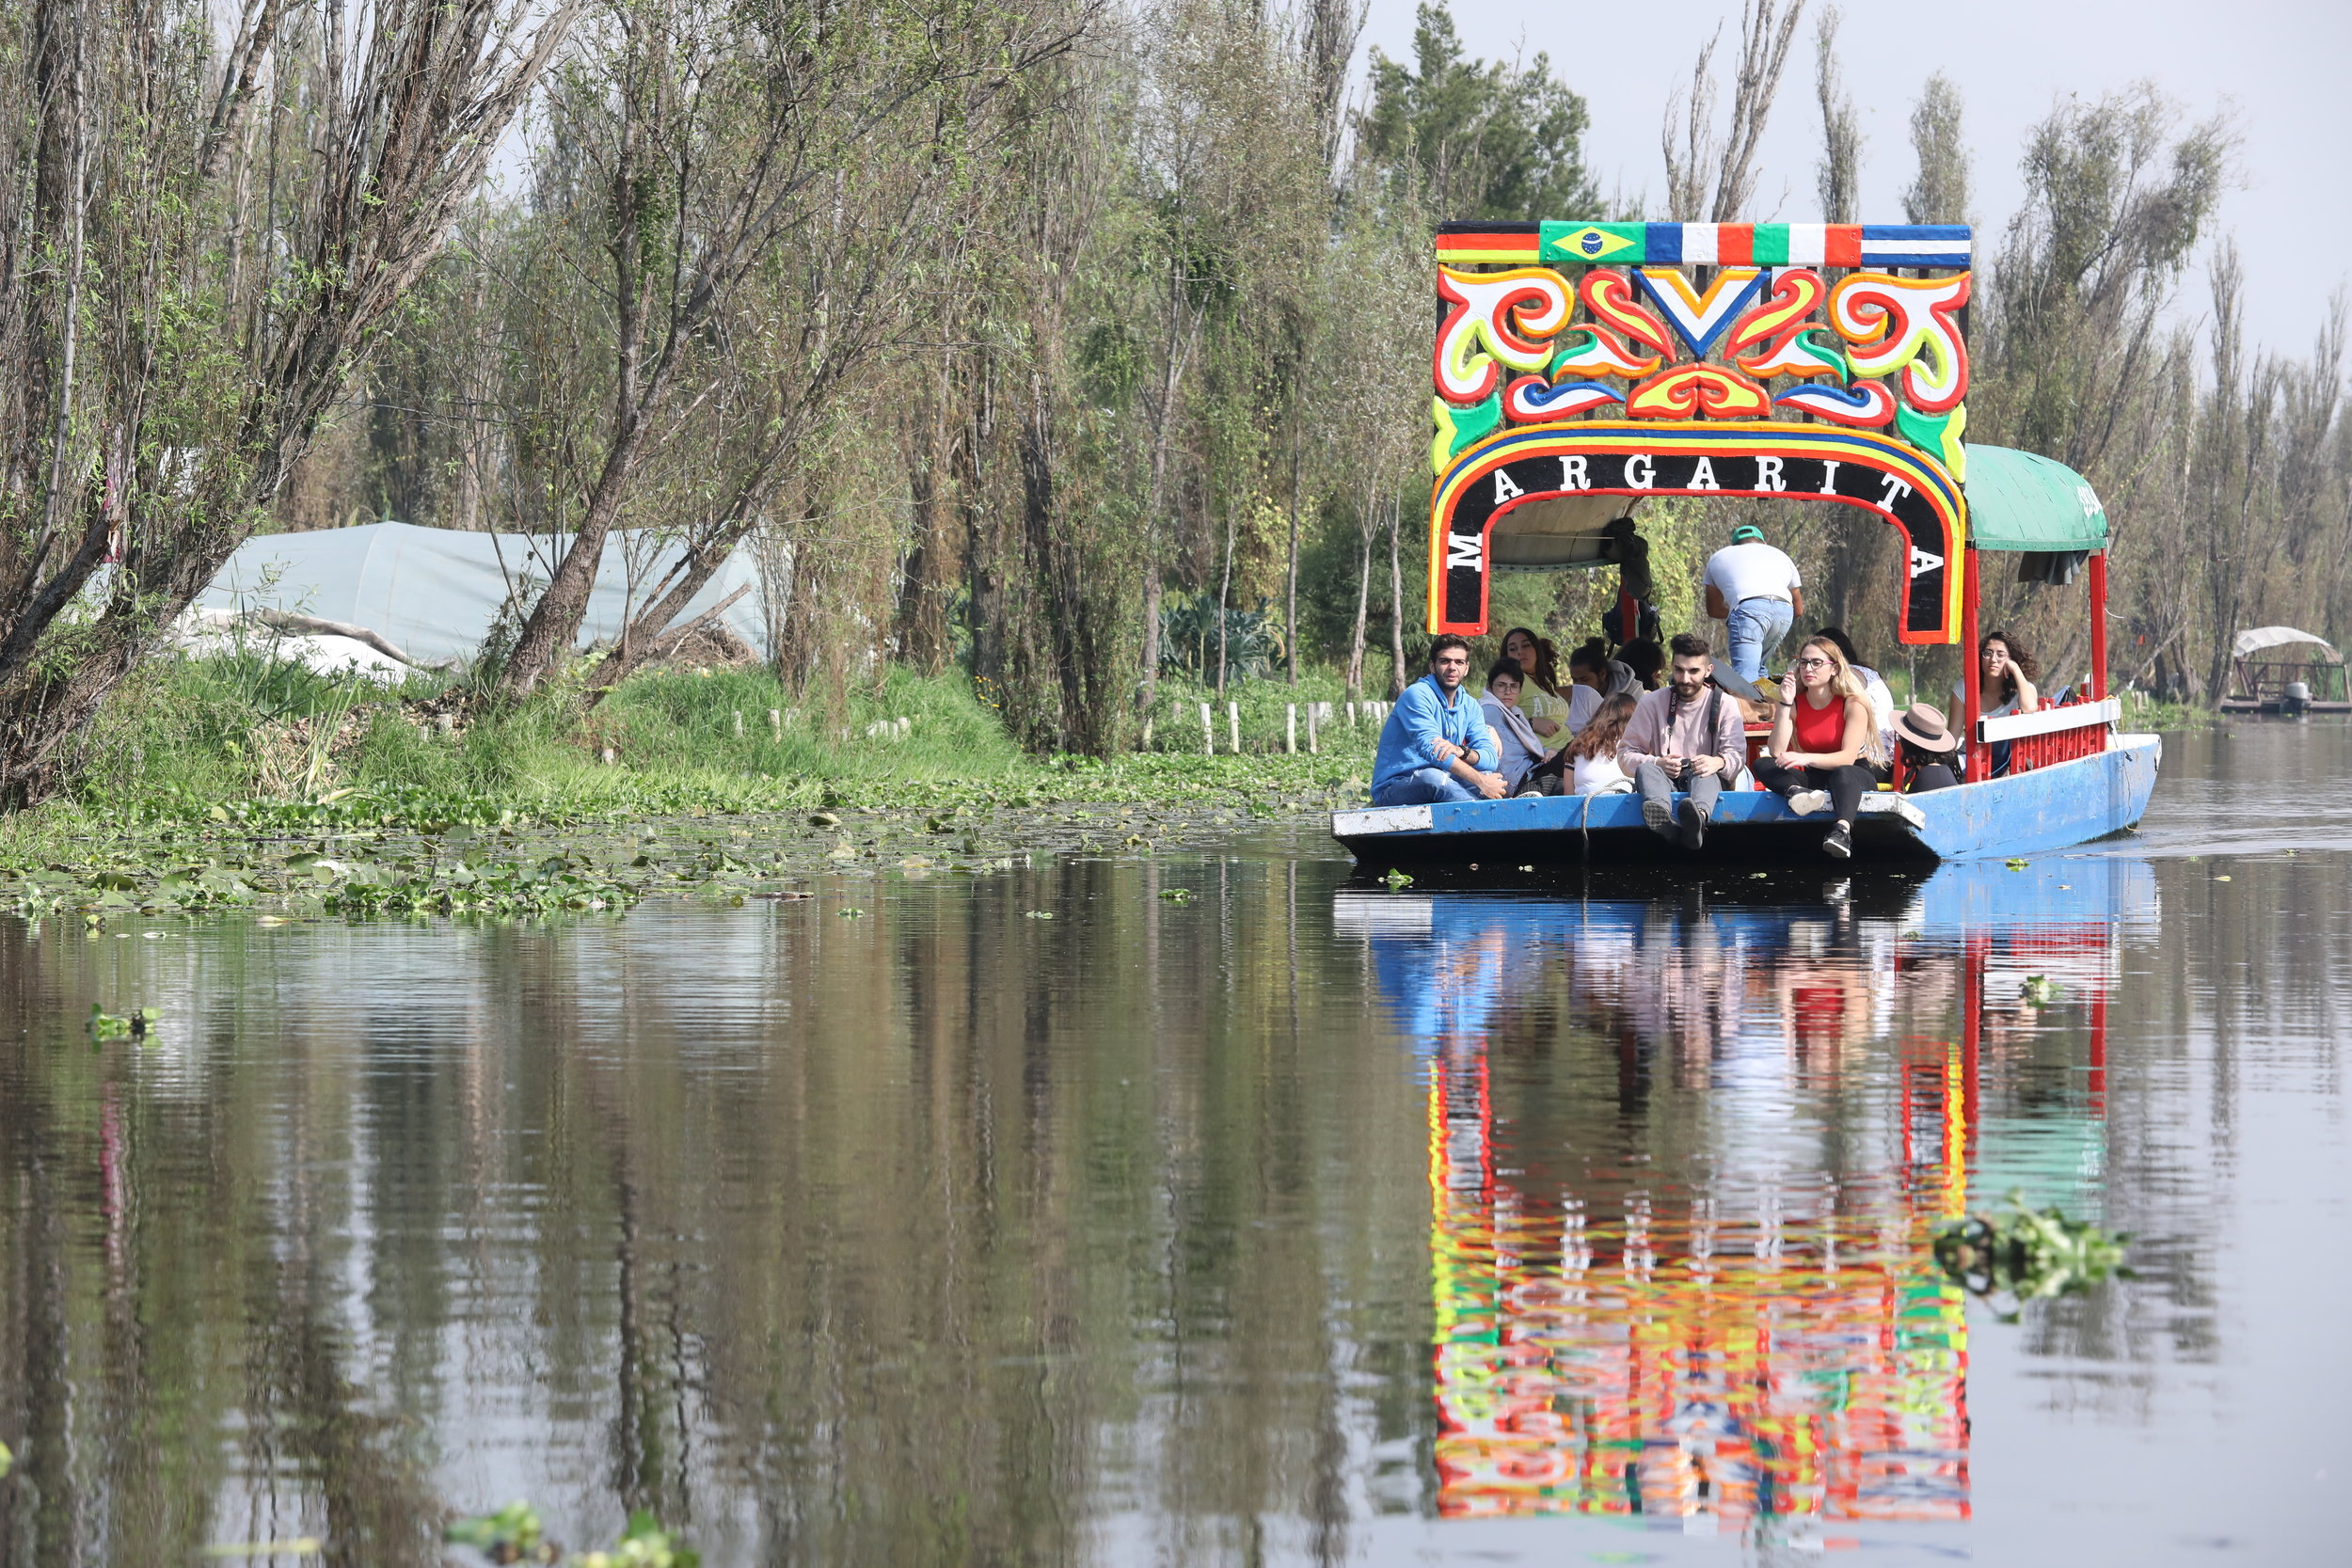 A trajinera boat floats along the Xocimilco canals / Photo by Krista Simmons